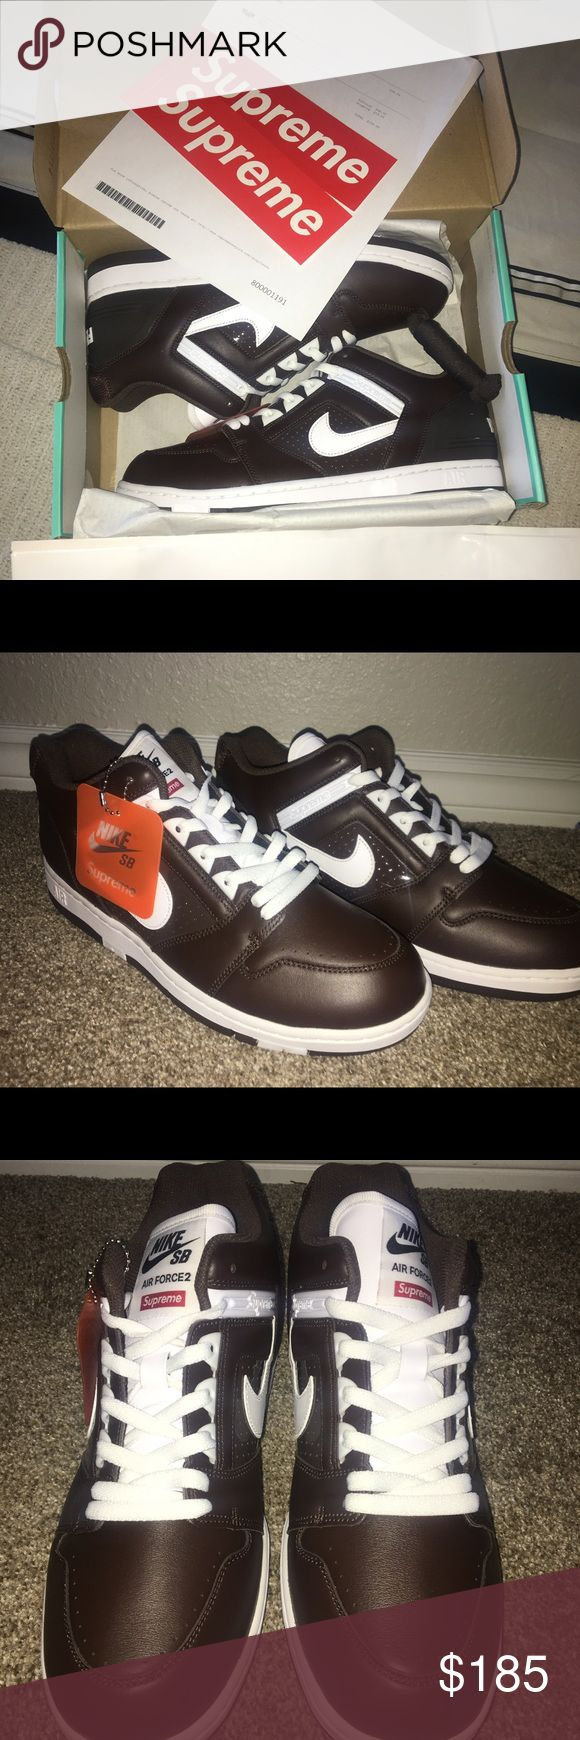 Supreme Nike SB Air Force 2 Brown Size 11 Brand new never worn fresh out the shipping box Supreme Shoes Sneakers